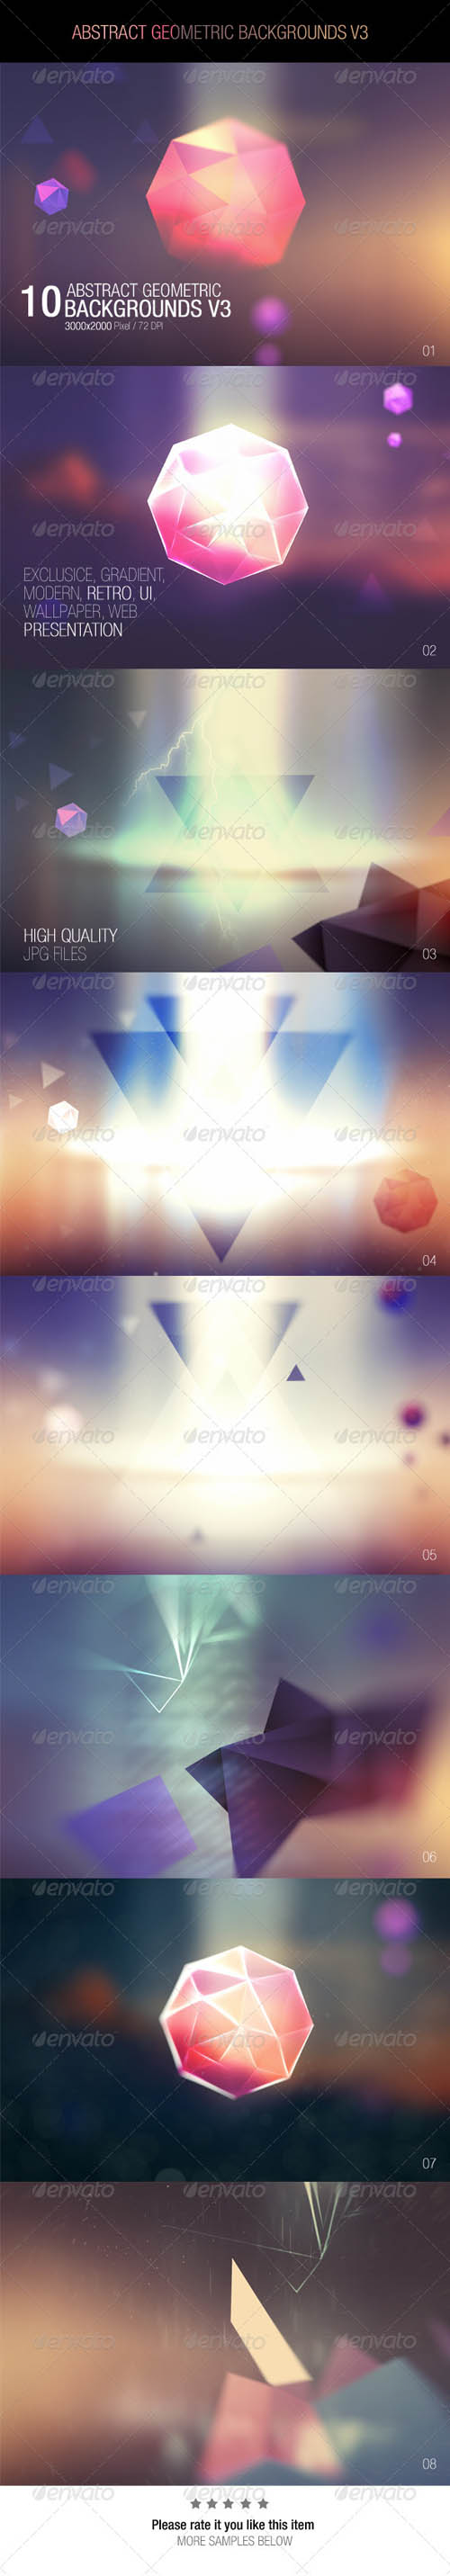 Abstract Geometric Backgrounds V3 7710031